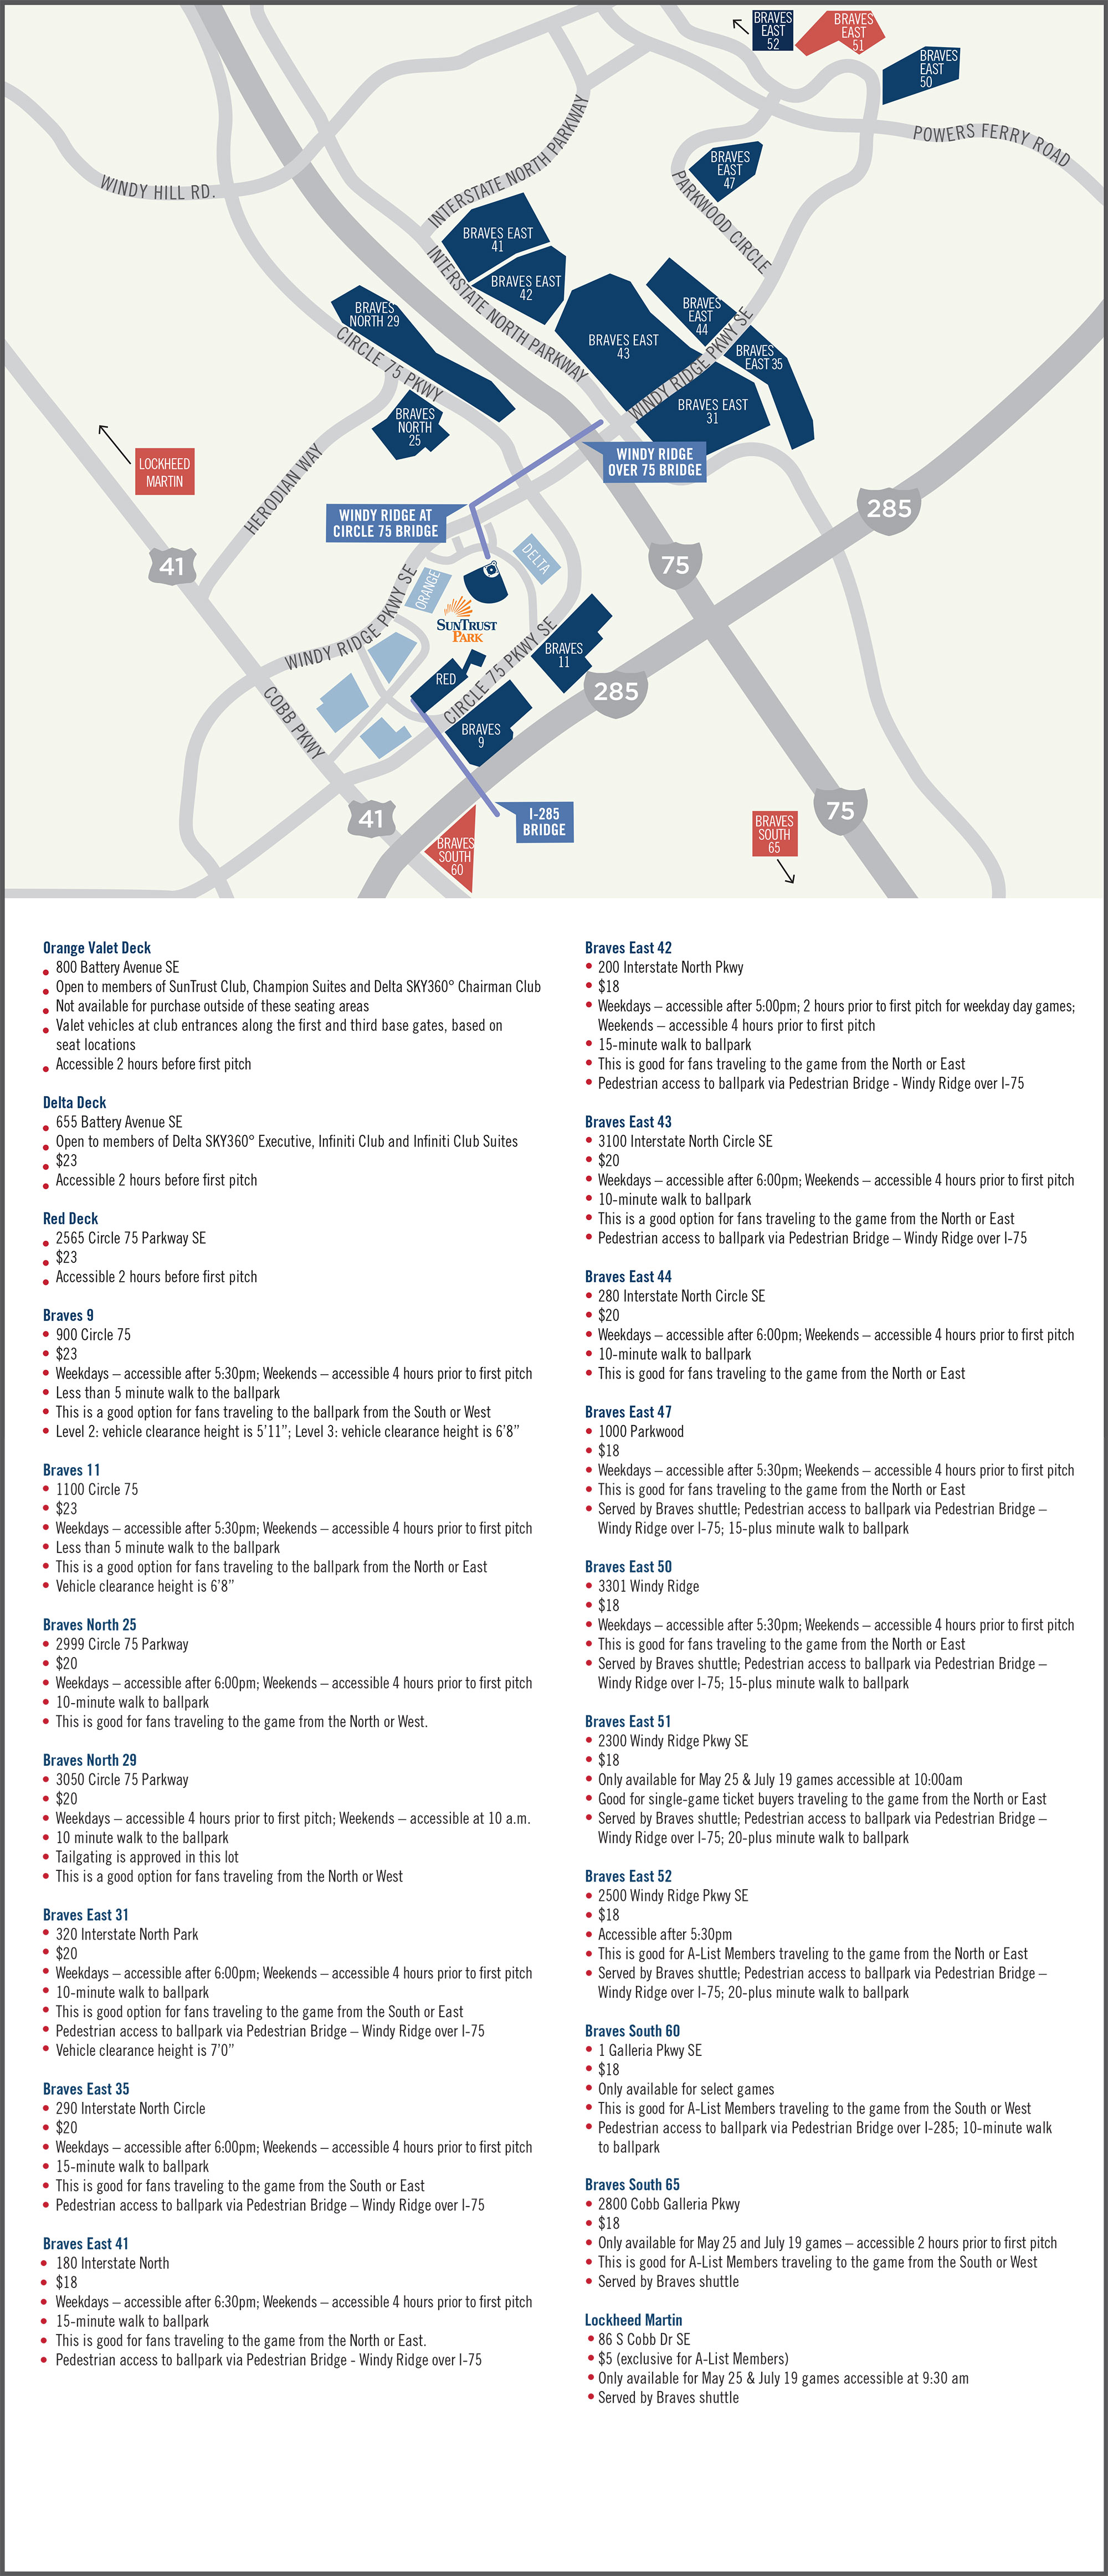 Battery Atlanta Map.Frequently Asked Questions About The Ballpark Experience